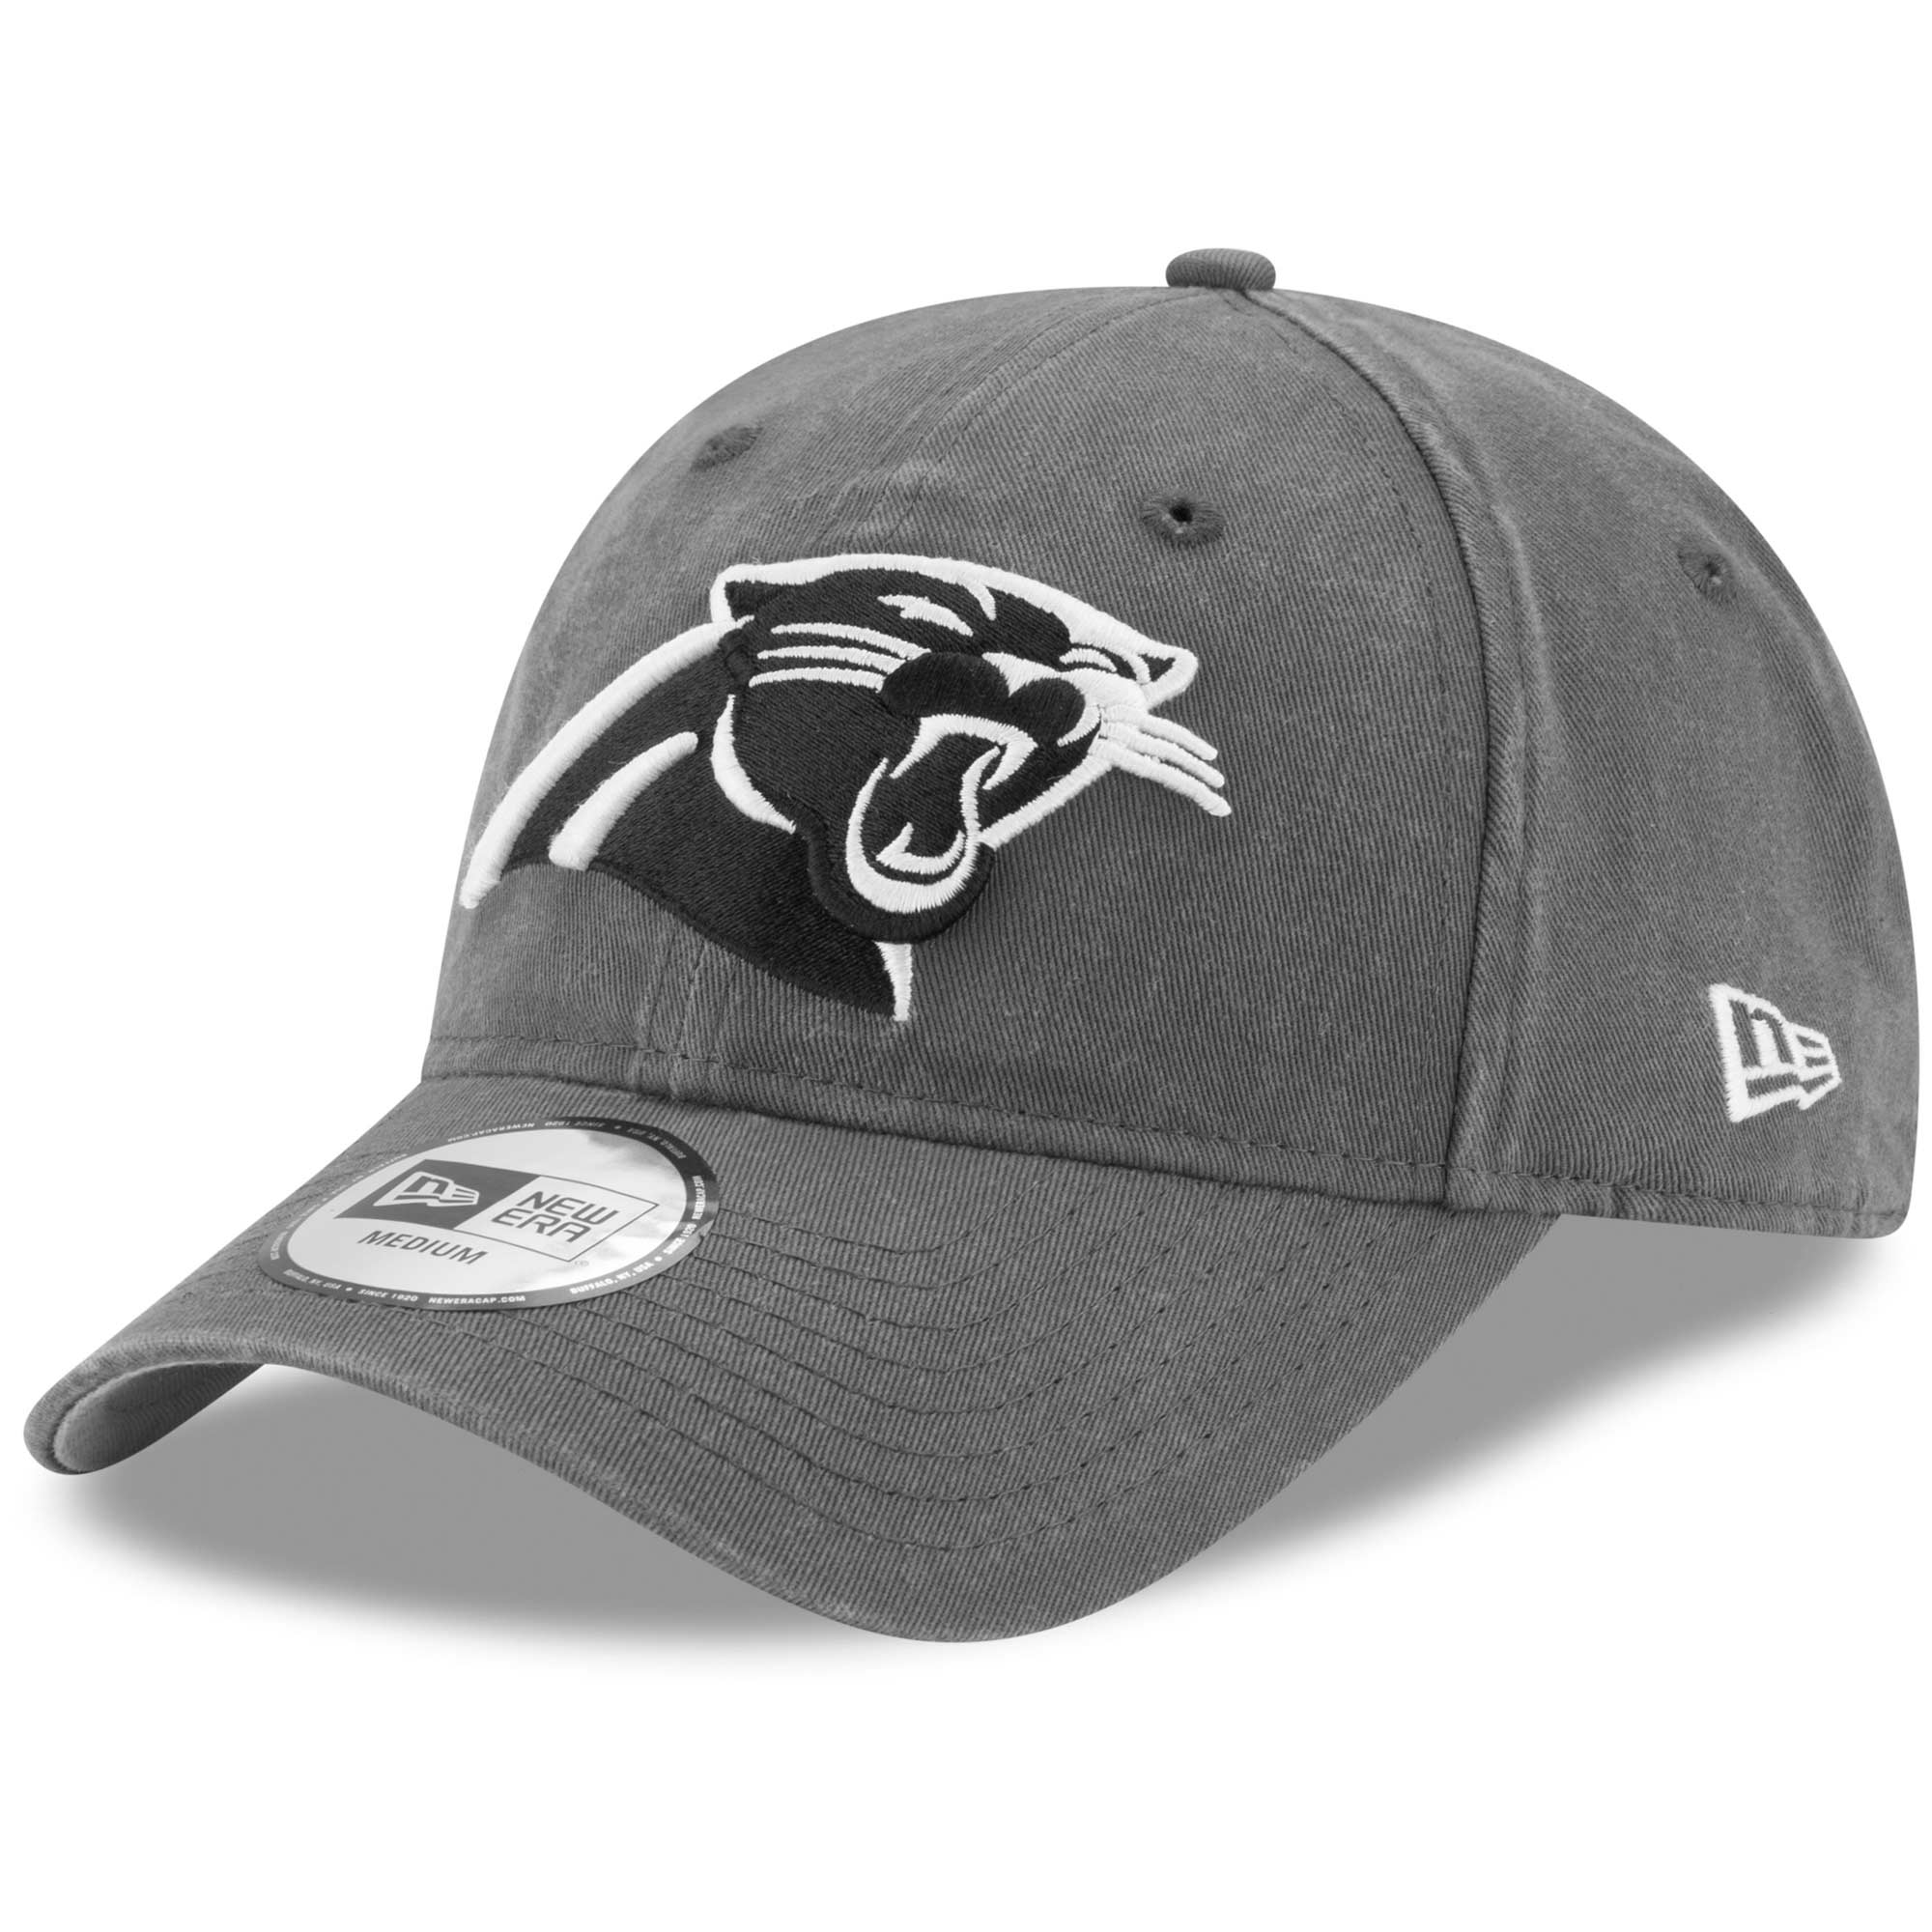 Carolina Panthers New Era Sagamore Relaxed 49FORTY Fitted Hat - Charcoal